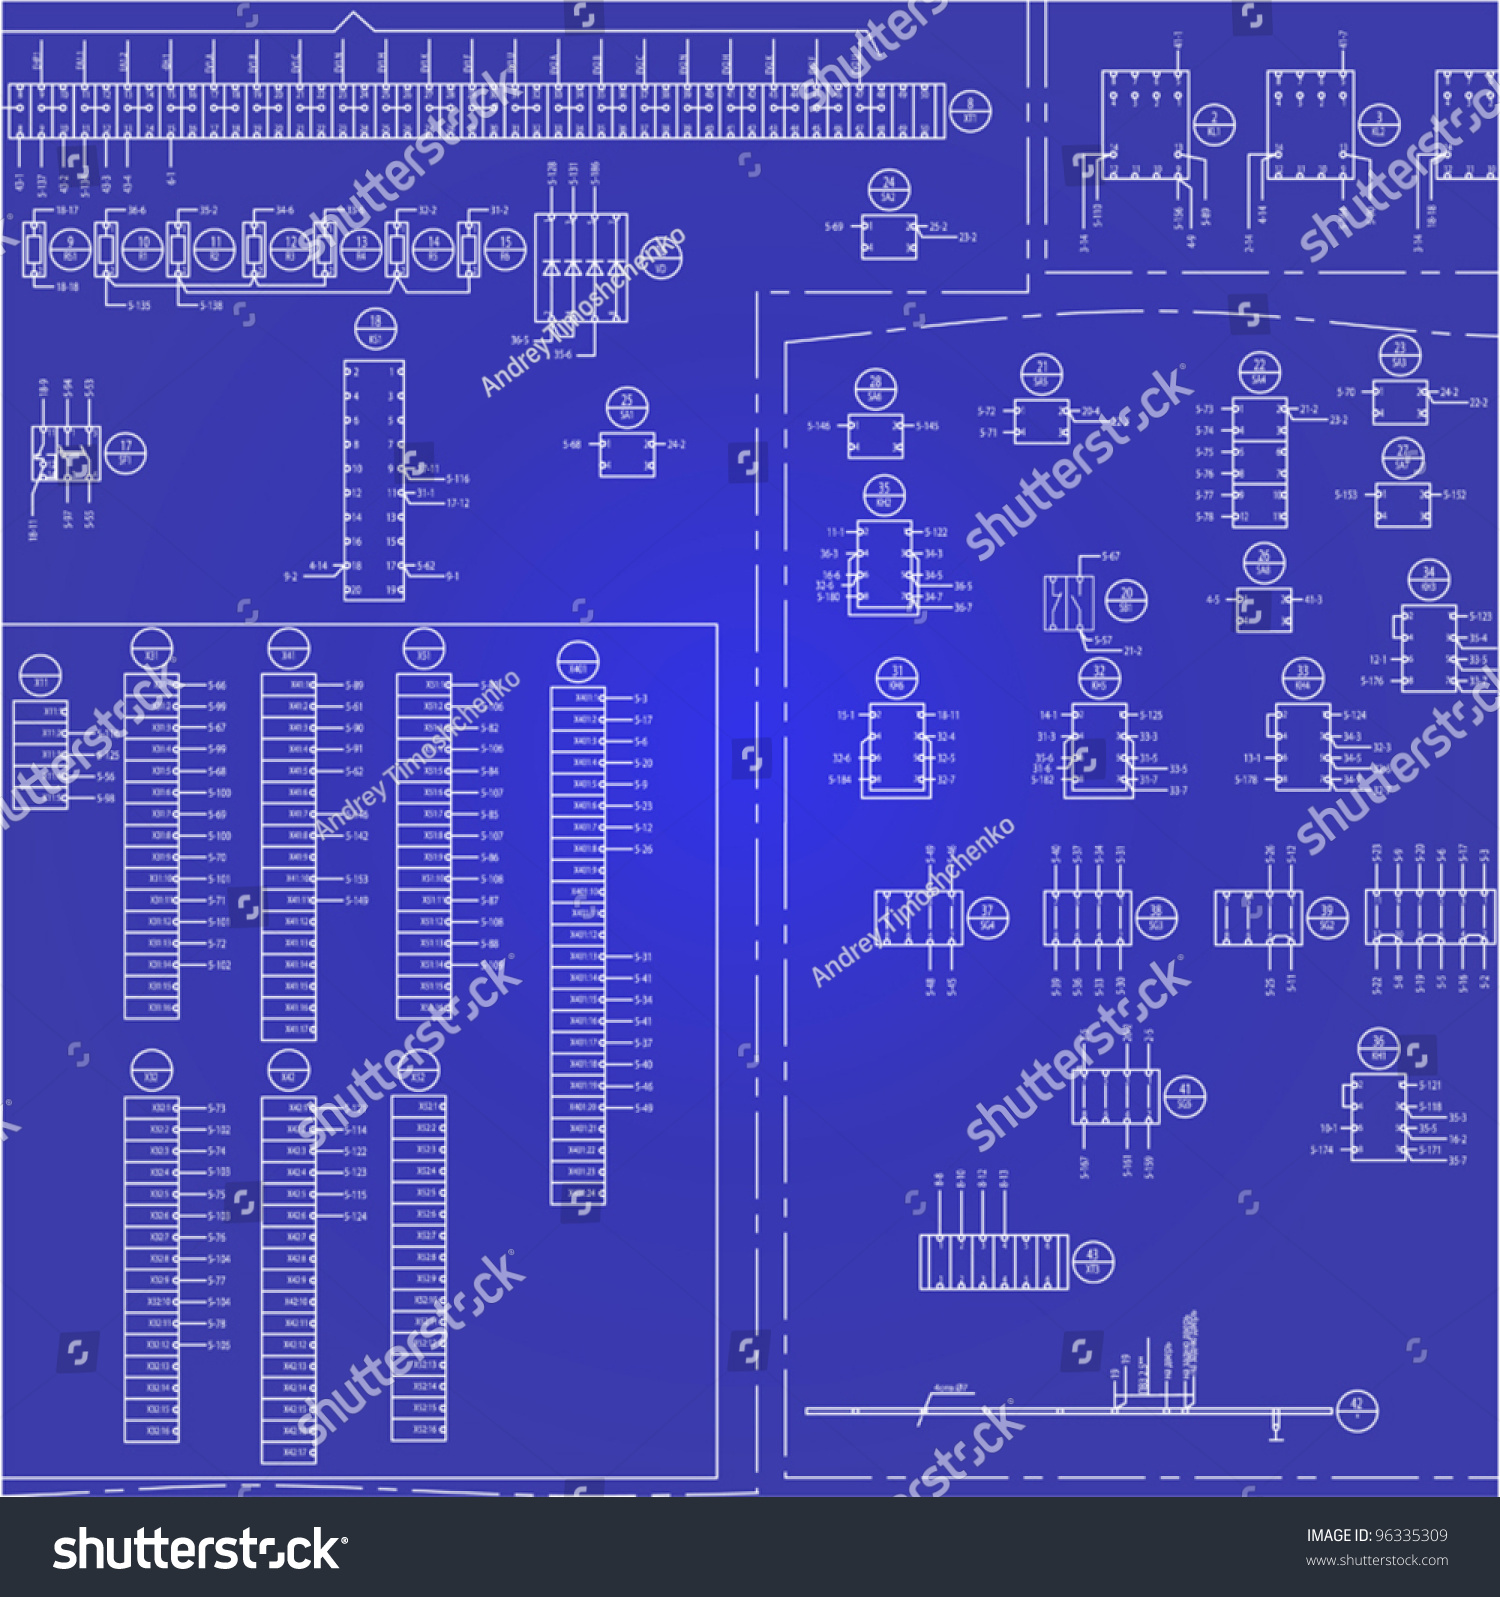 electrical wiring diagram background stock vector illustration electrical wiring diagram background stock vector illustration 96335309 shutterstock